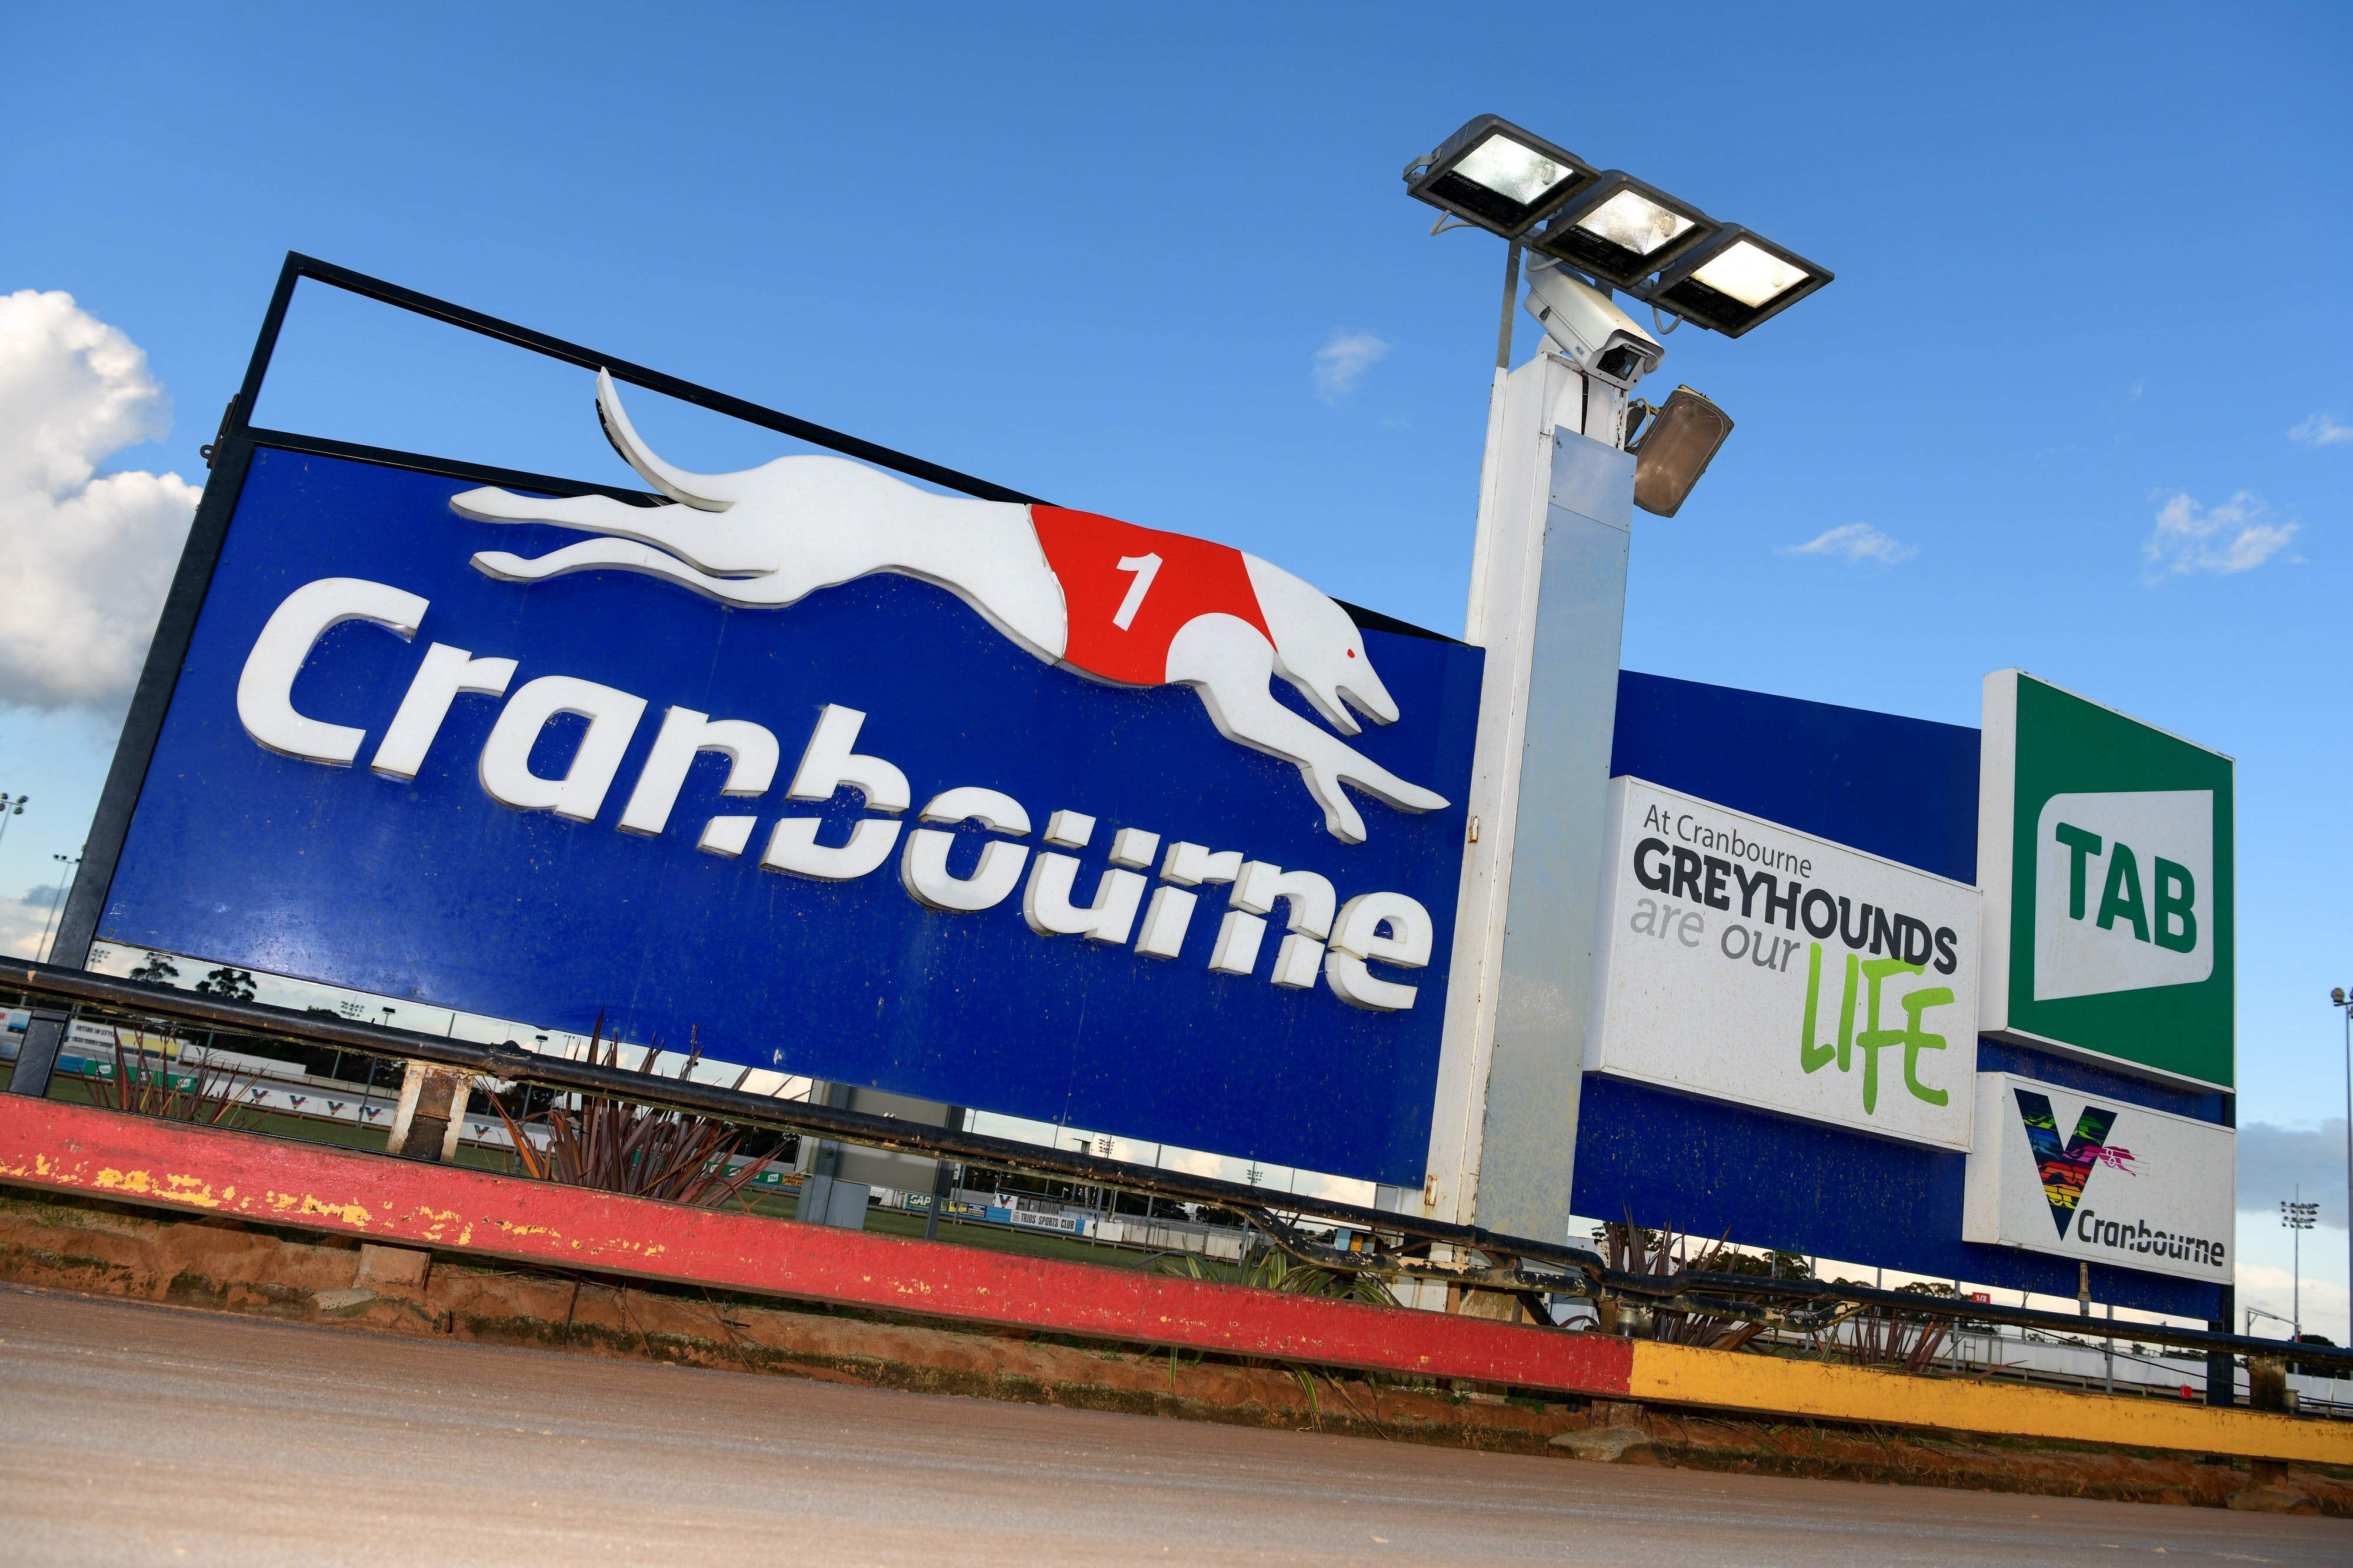 Cranbourne Greyhound Racing Club - Accommodation Burleigh